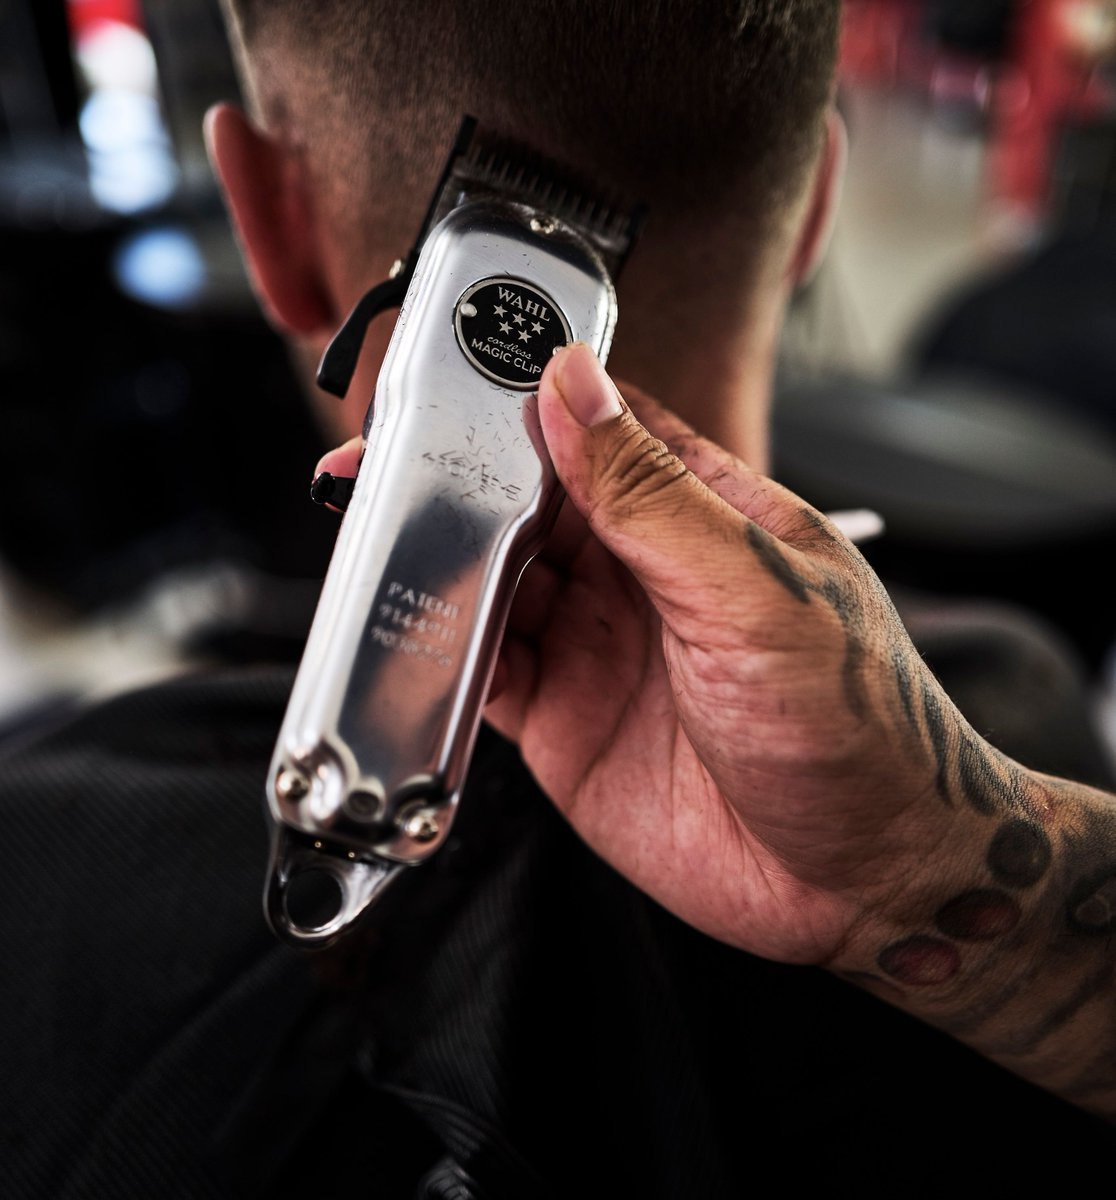 We can't stop staring...The Limited Edition Wahl 56437 All Metal 5 Star Cordless Magic Clip! #GetYourHandsonWahl  #wahlbarbers #wahlprocanada #barbershop  #wahloffamepic.twitter.com/bEdB3dT1iB